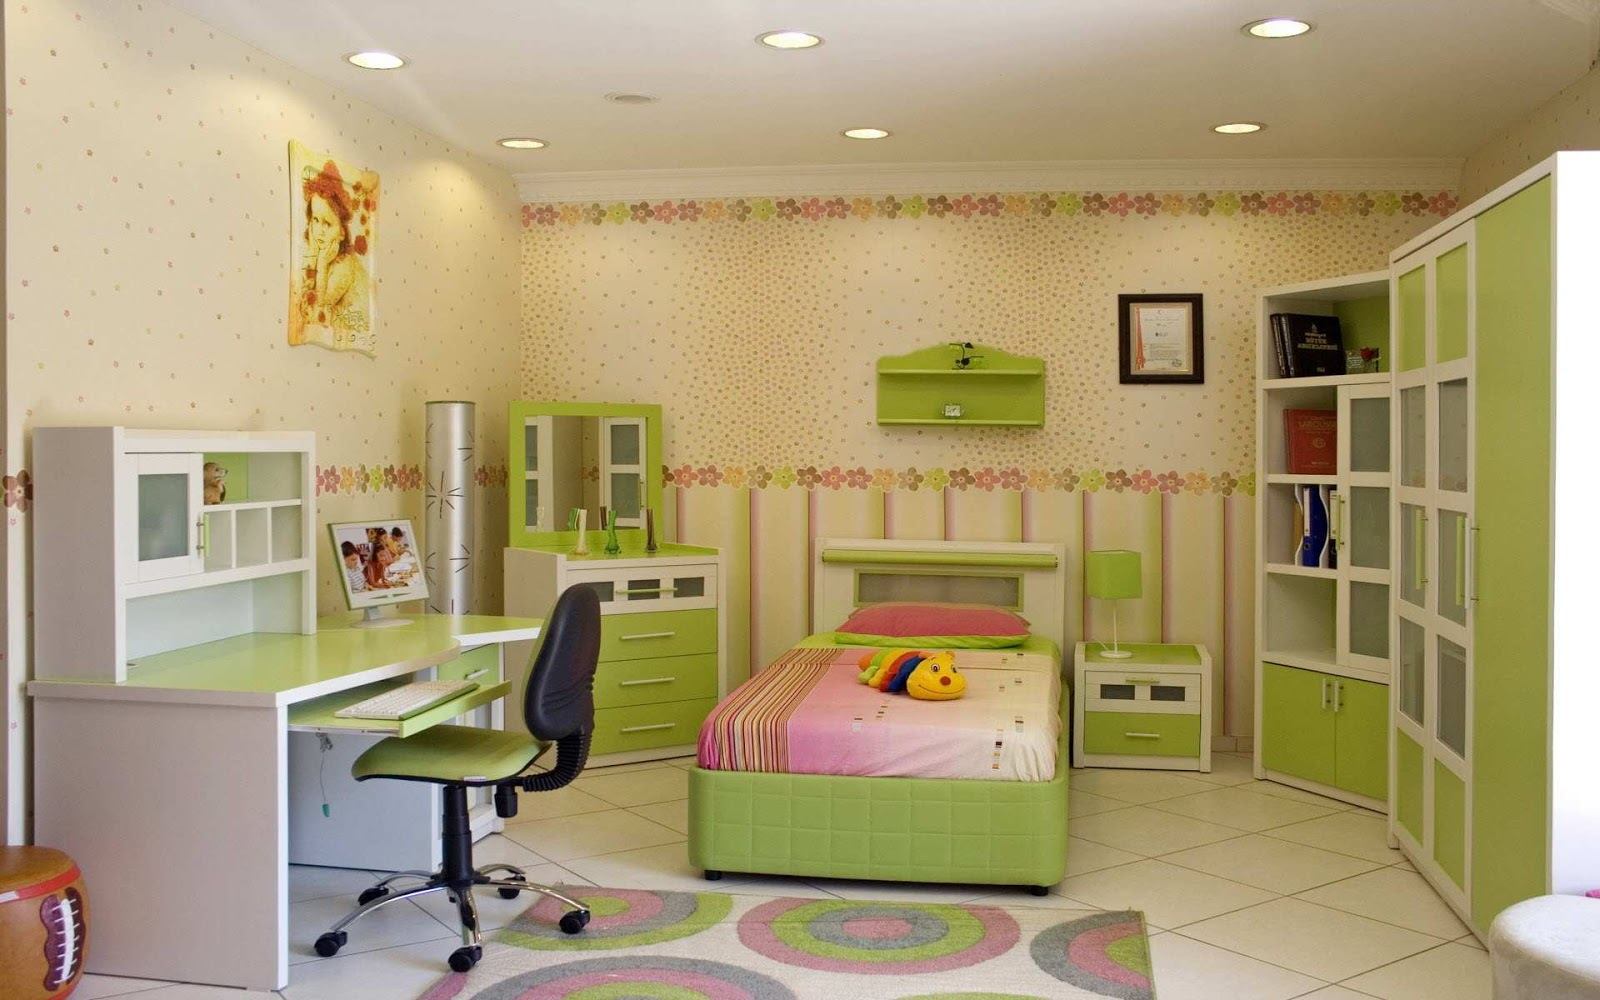 Green Interior Design And Furnitures   House Design Green